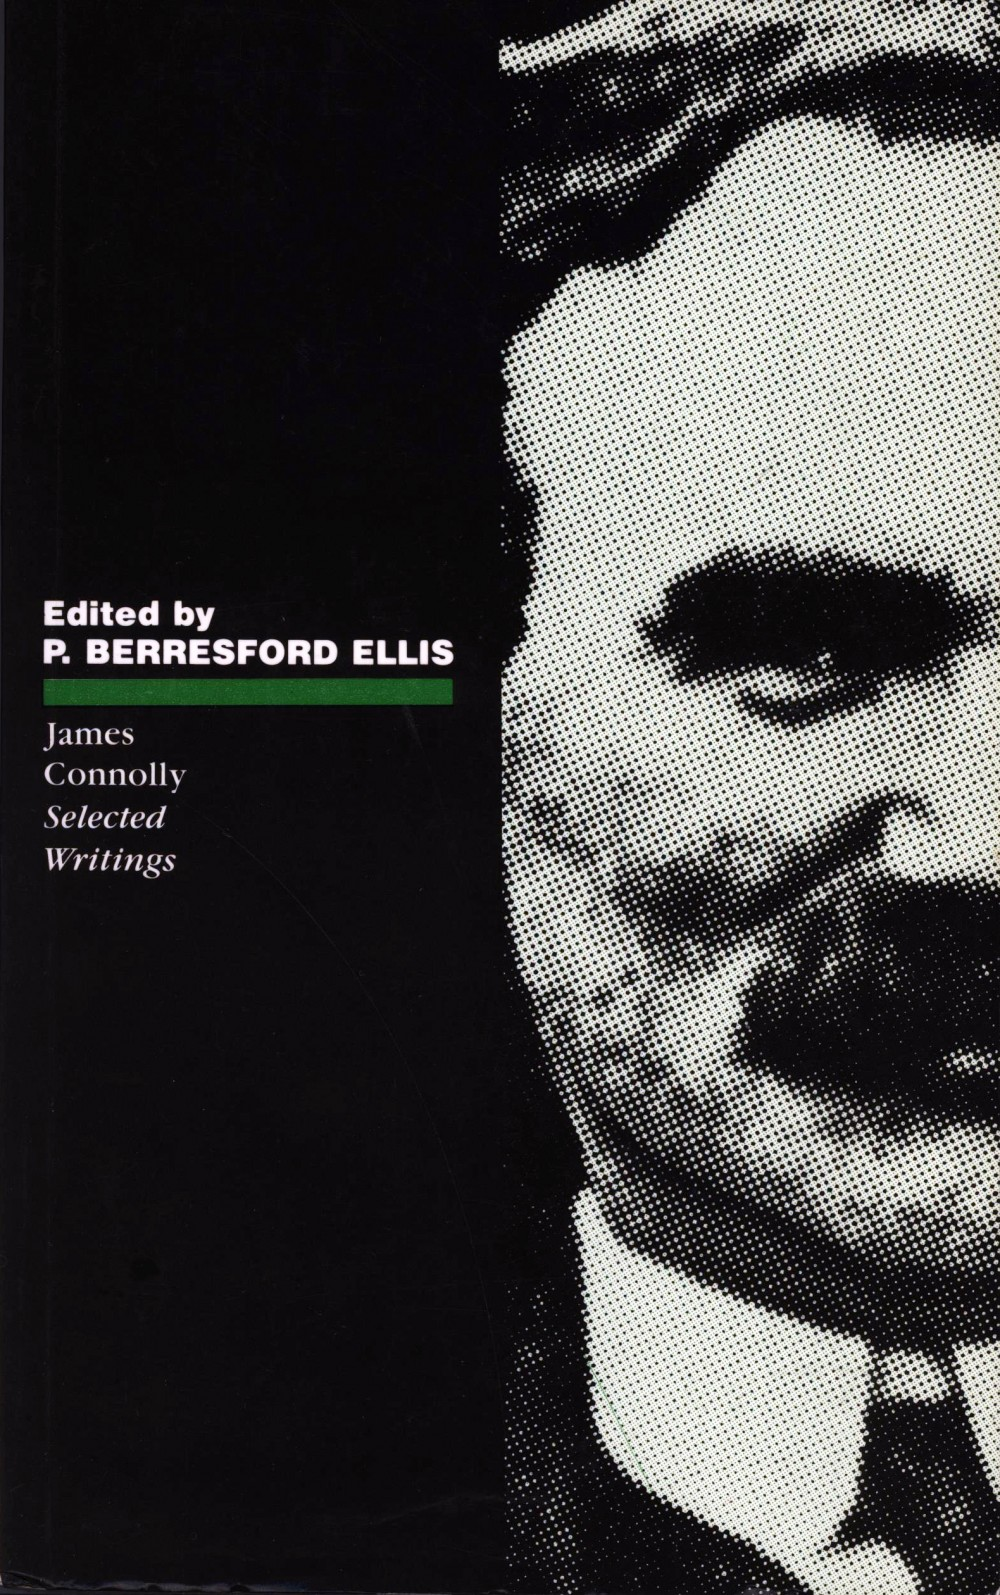 P. Berresford Ellis (red): James Connolly: Selected writings